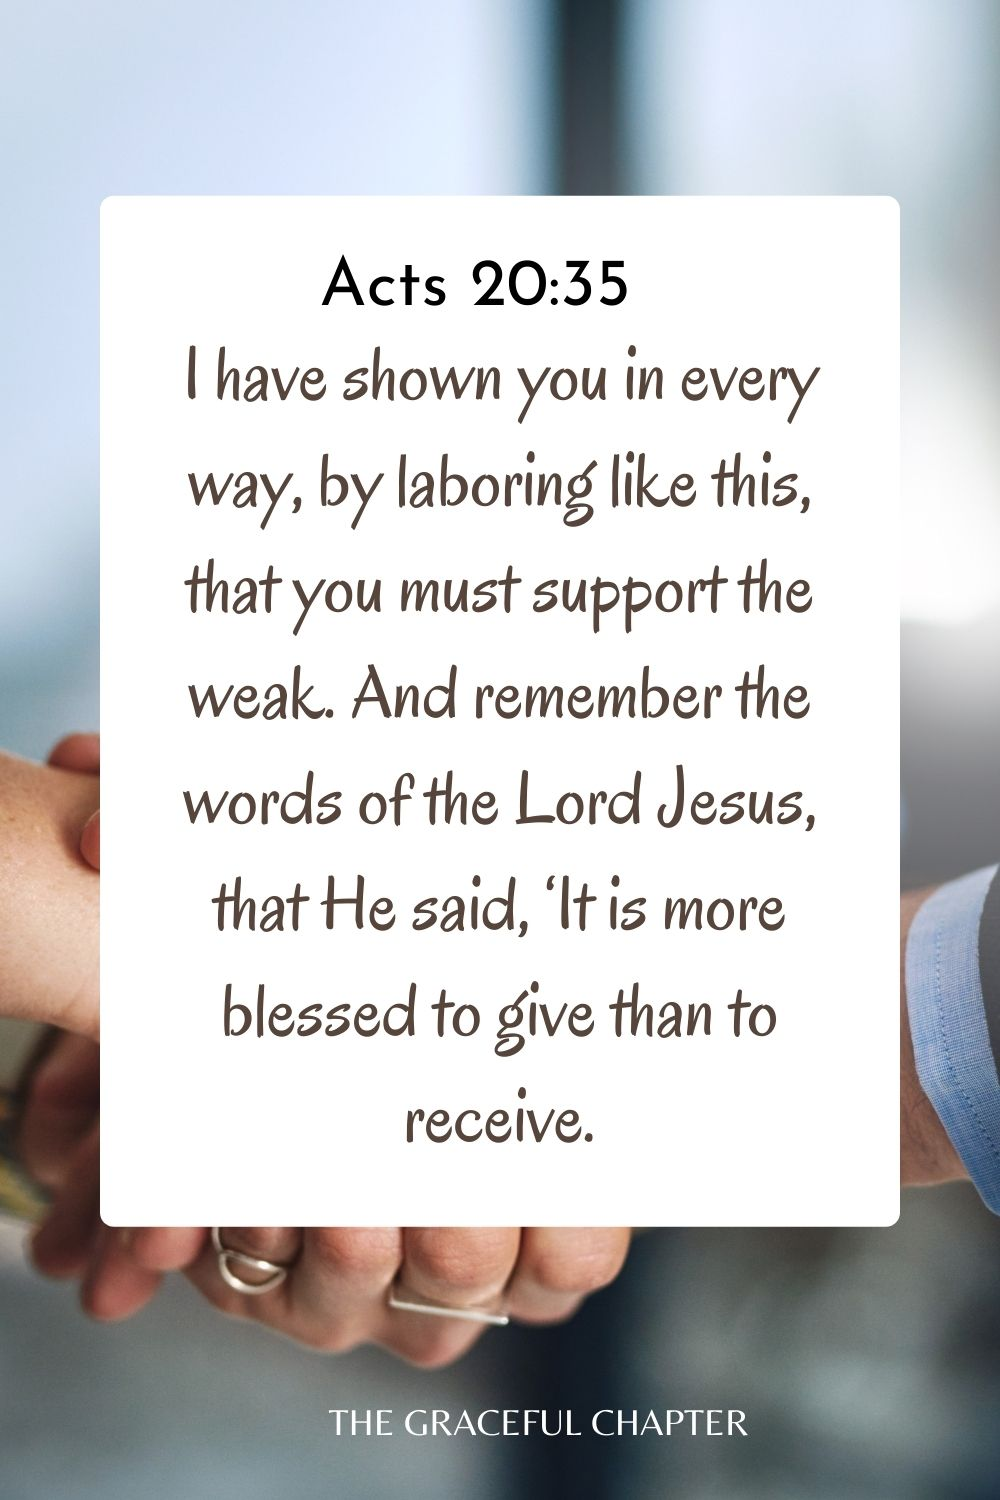 I have shown you in every way, by laboring like this, that you must support the weak. And remember the words of the Lord Jesus, that He said, 'It is more blessed to give than to receive. Acts 20:35